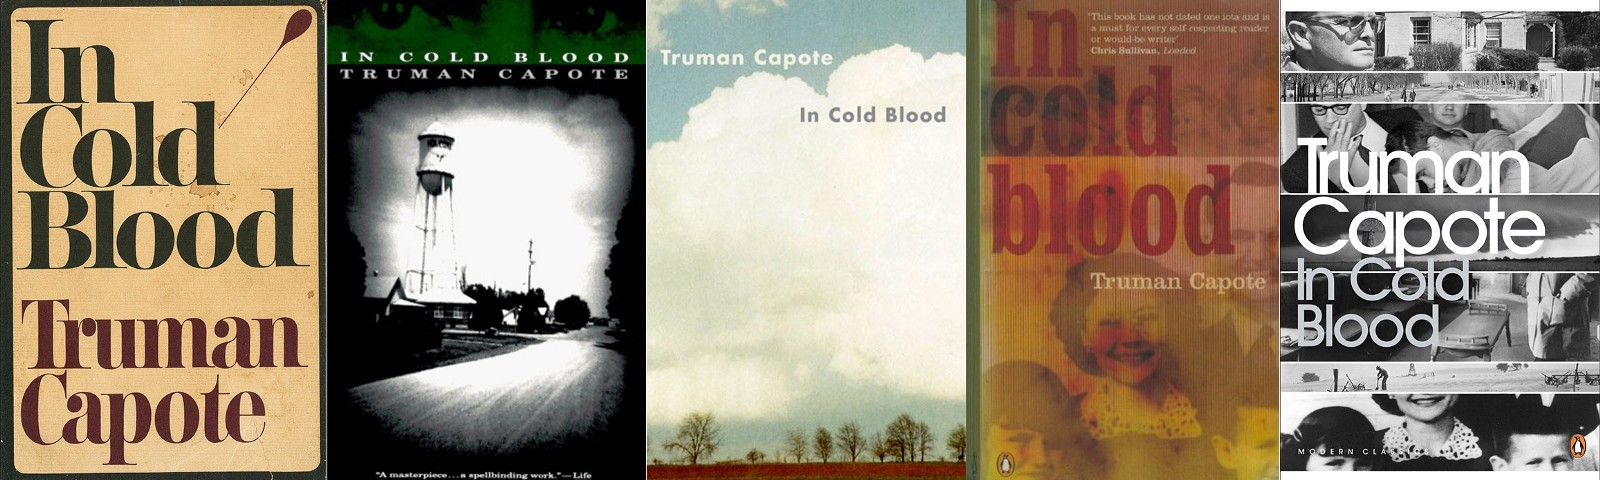 truman capotes anonymity essay Perry smith - in cold blood by truman capote 3 pages 781 words december 2014 saved essays save your essays here so you can locate them quickly.